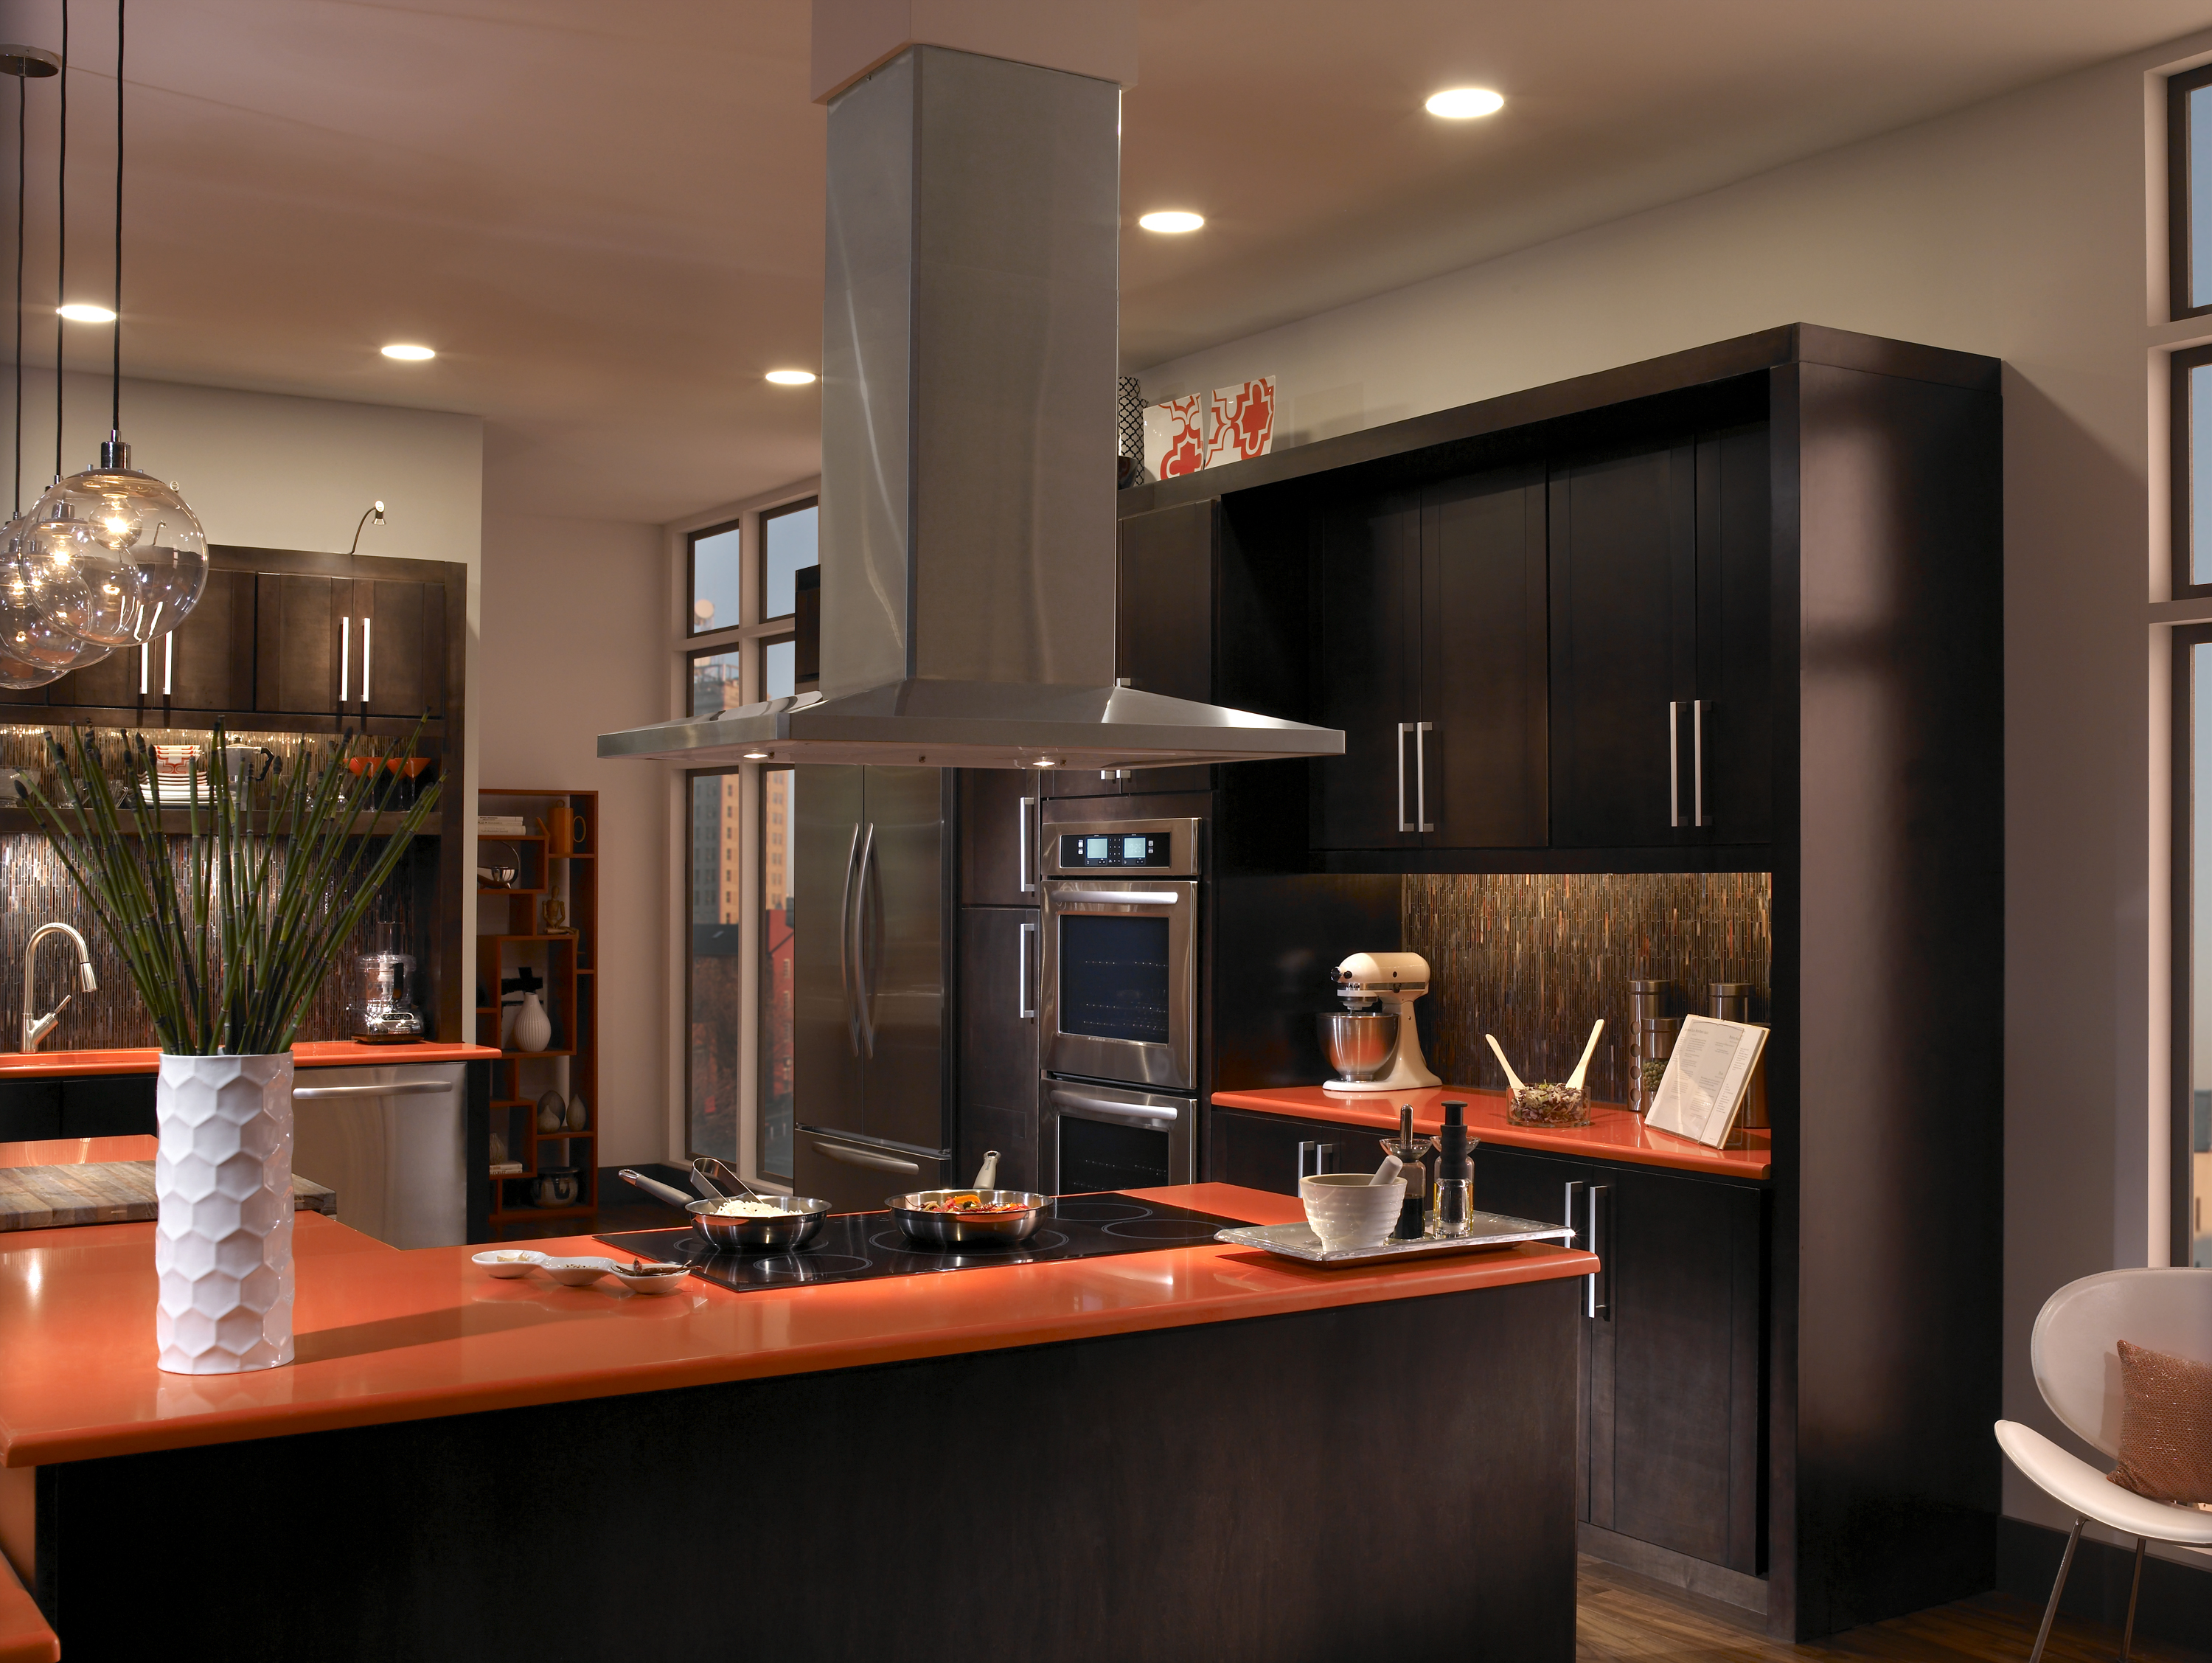 COURTENAY APPLIANCES The Upper Vancouver Island Luxury Appliance Showroom 250 334 3666